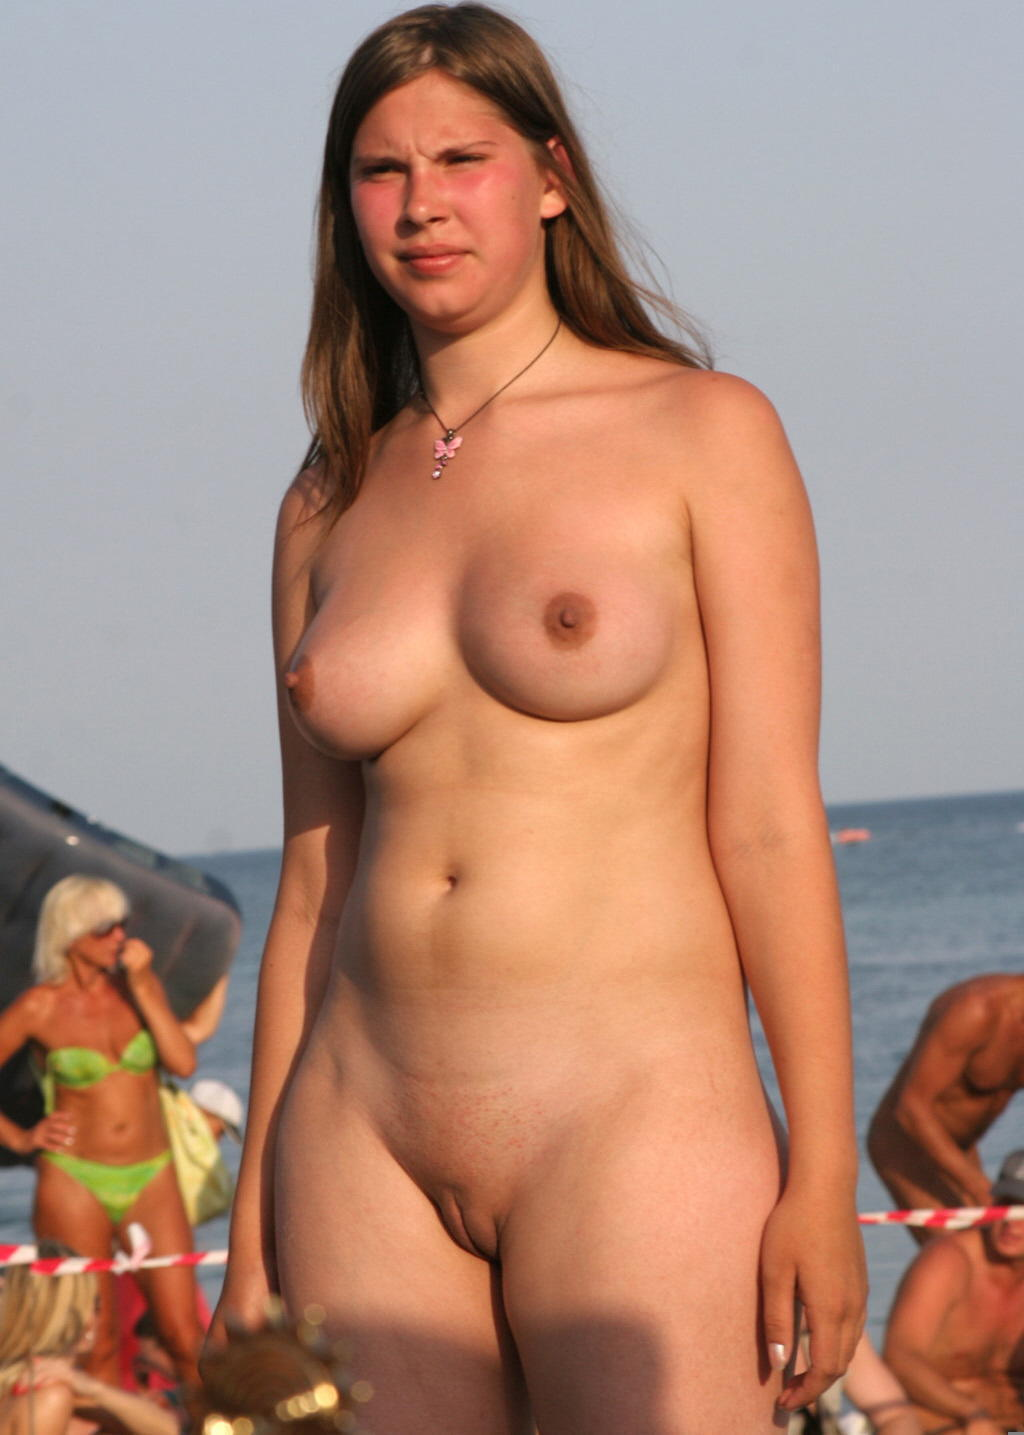 Fatty babe with shaved bald cunt huge breasts and amazing curves at the nudist beach